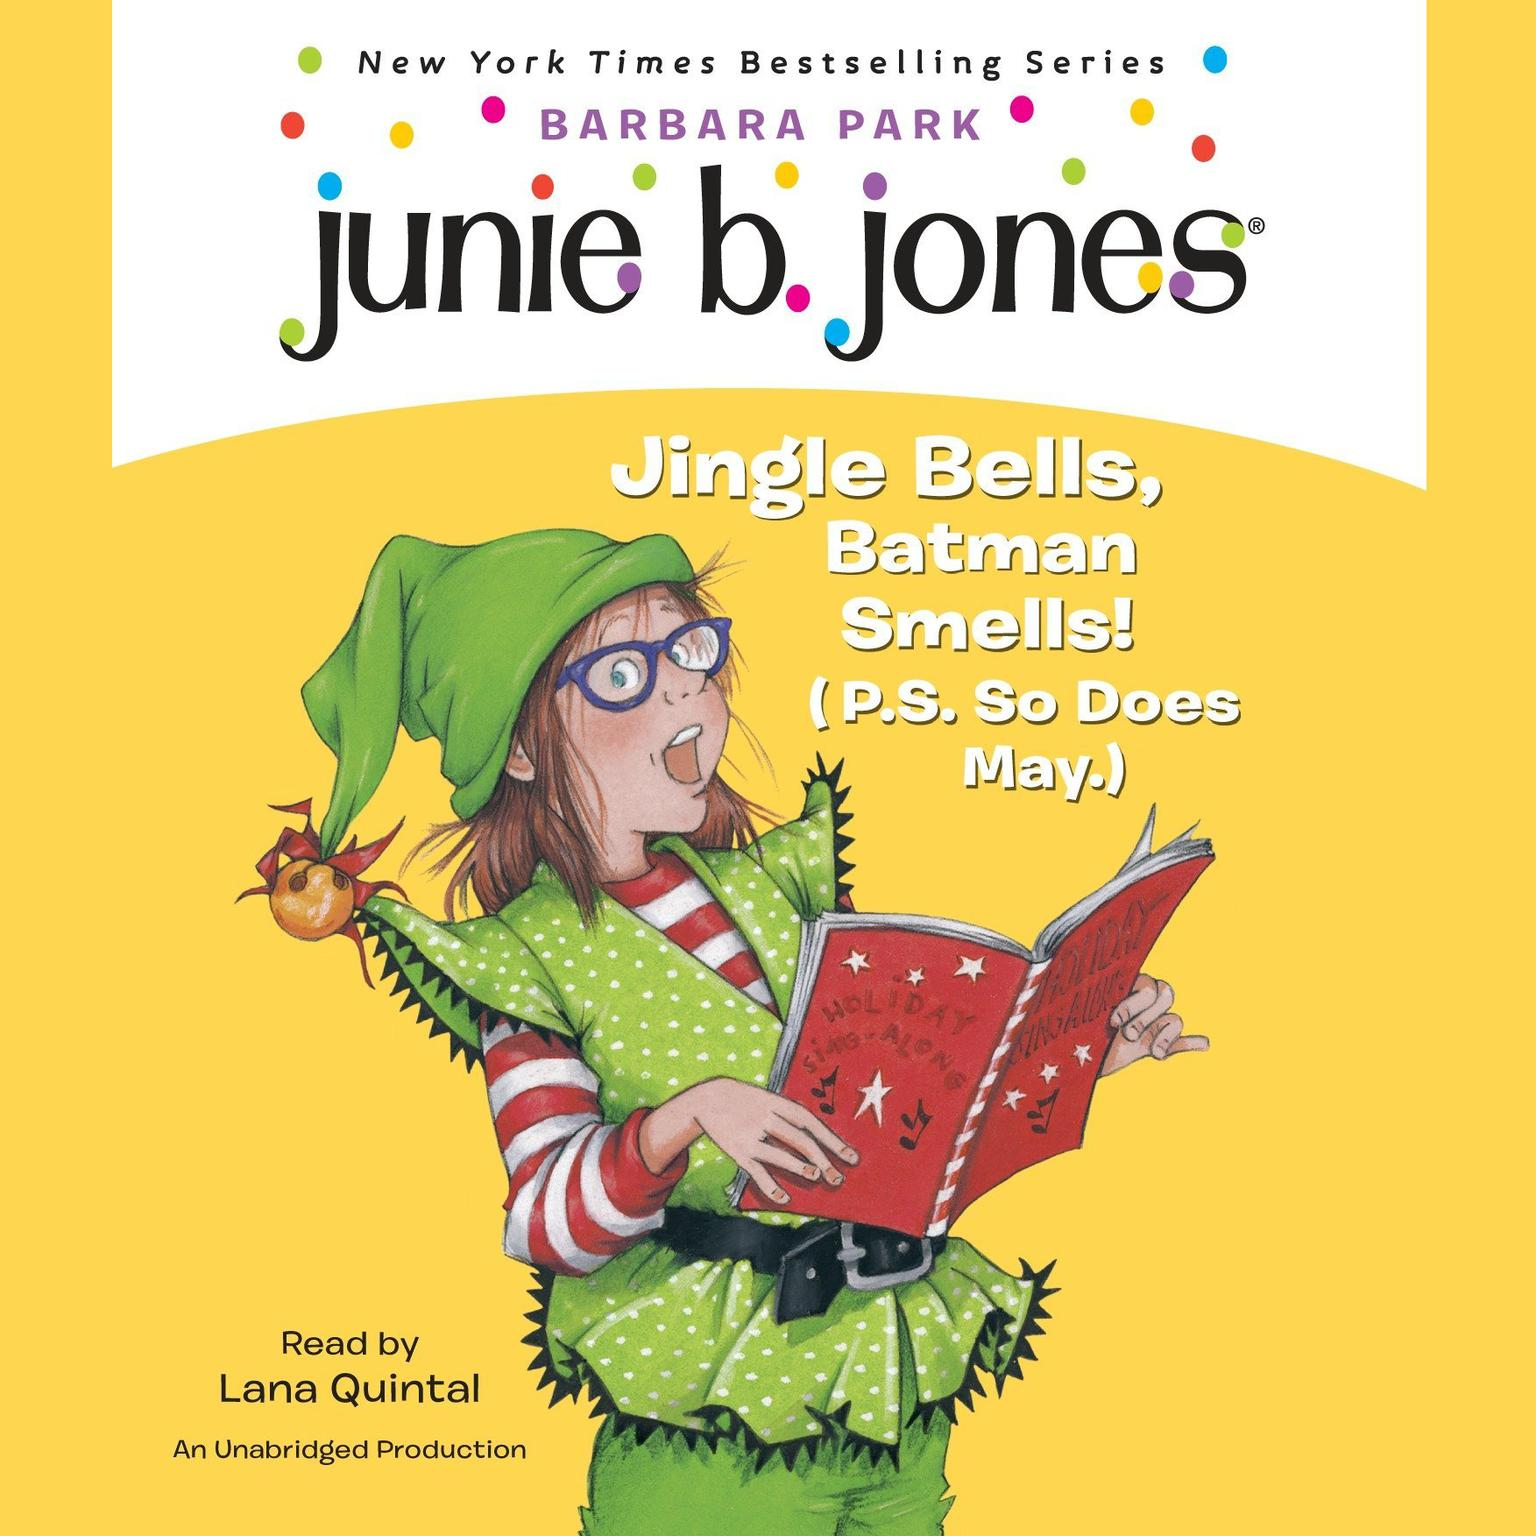 Printable Junie B. Jones #25: Jingle Bells, Batman Smells! (P.S. So Does May.): Junie B. Jones #25 Audiobook Cover Art